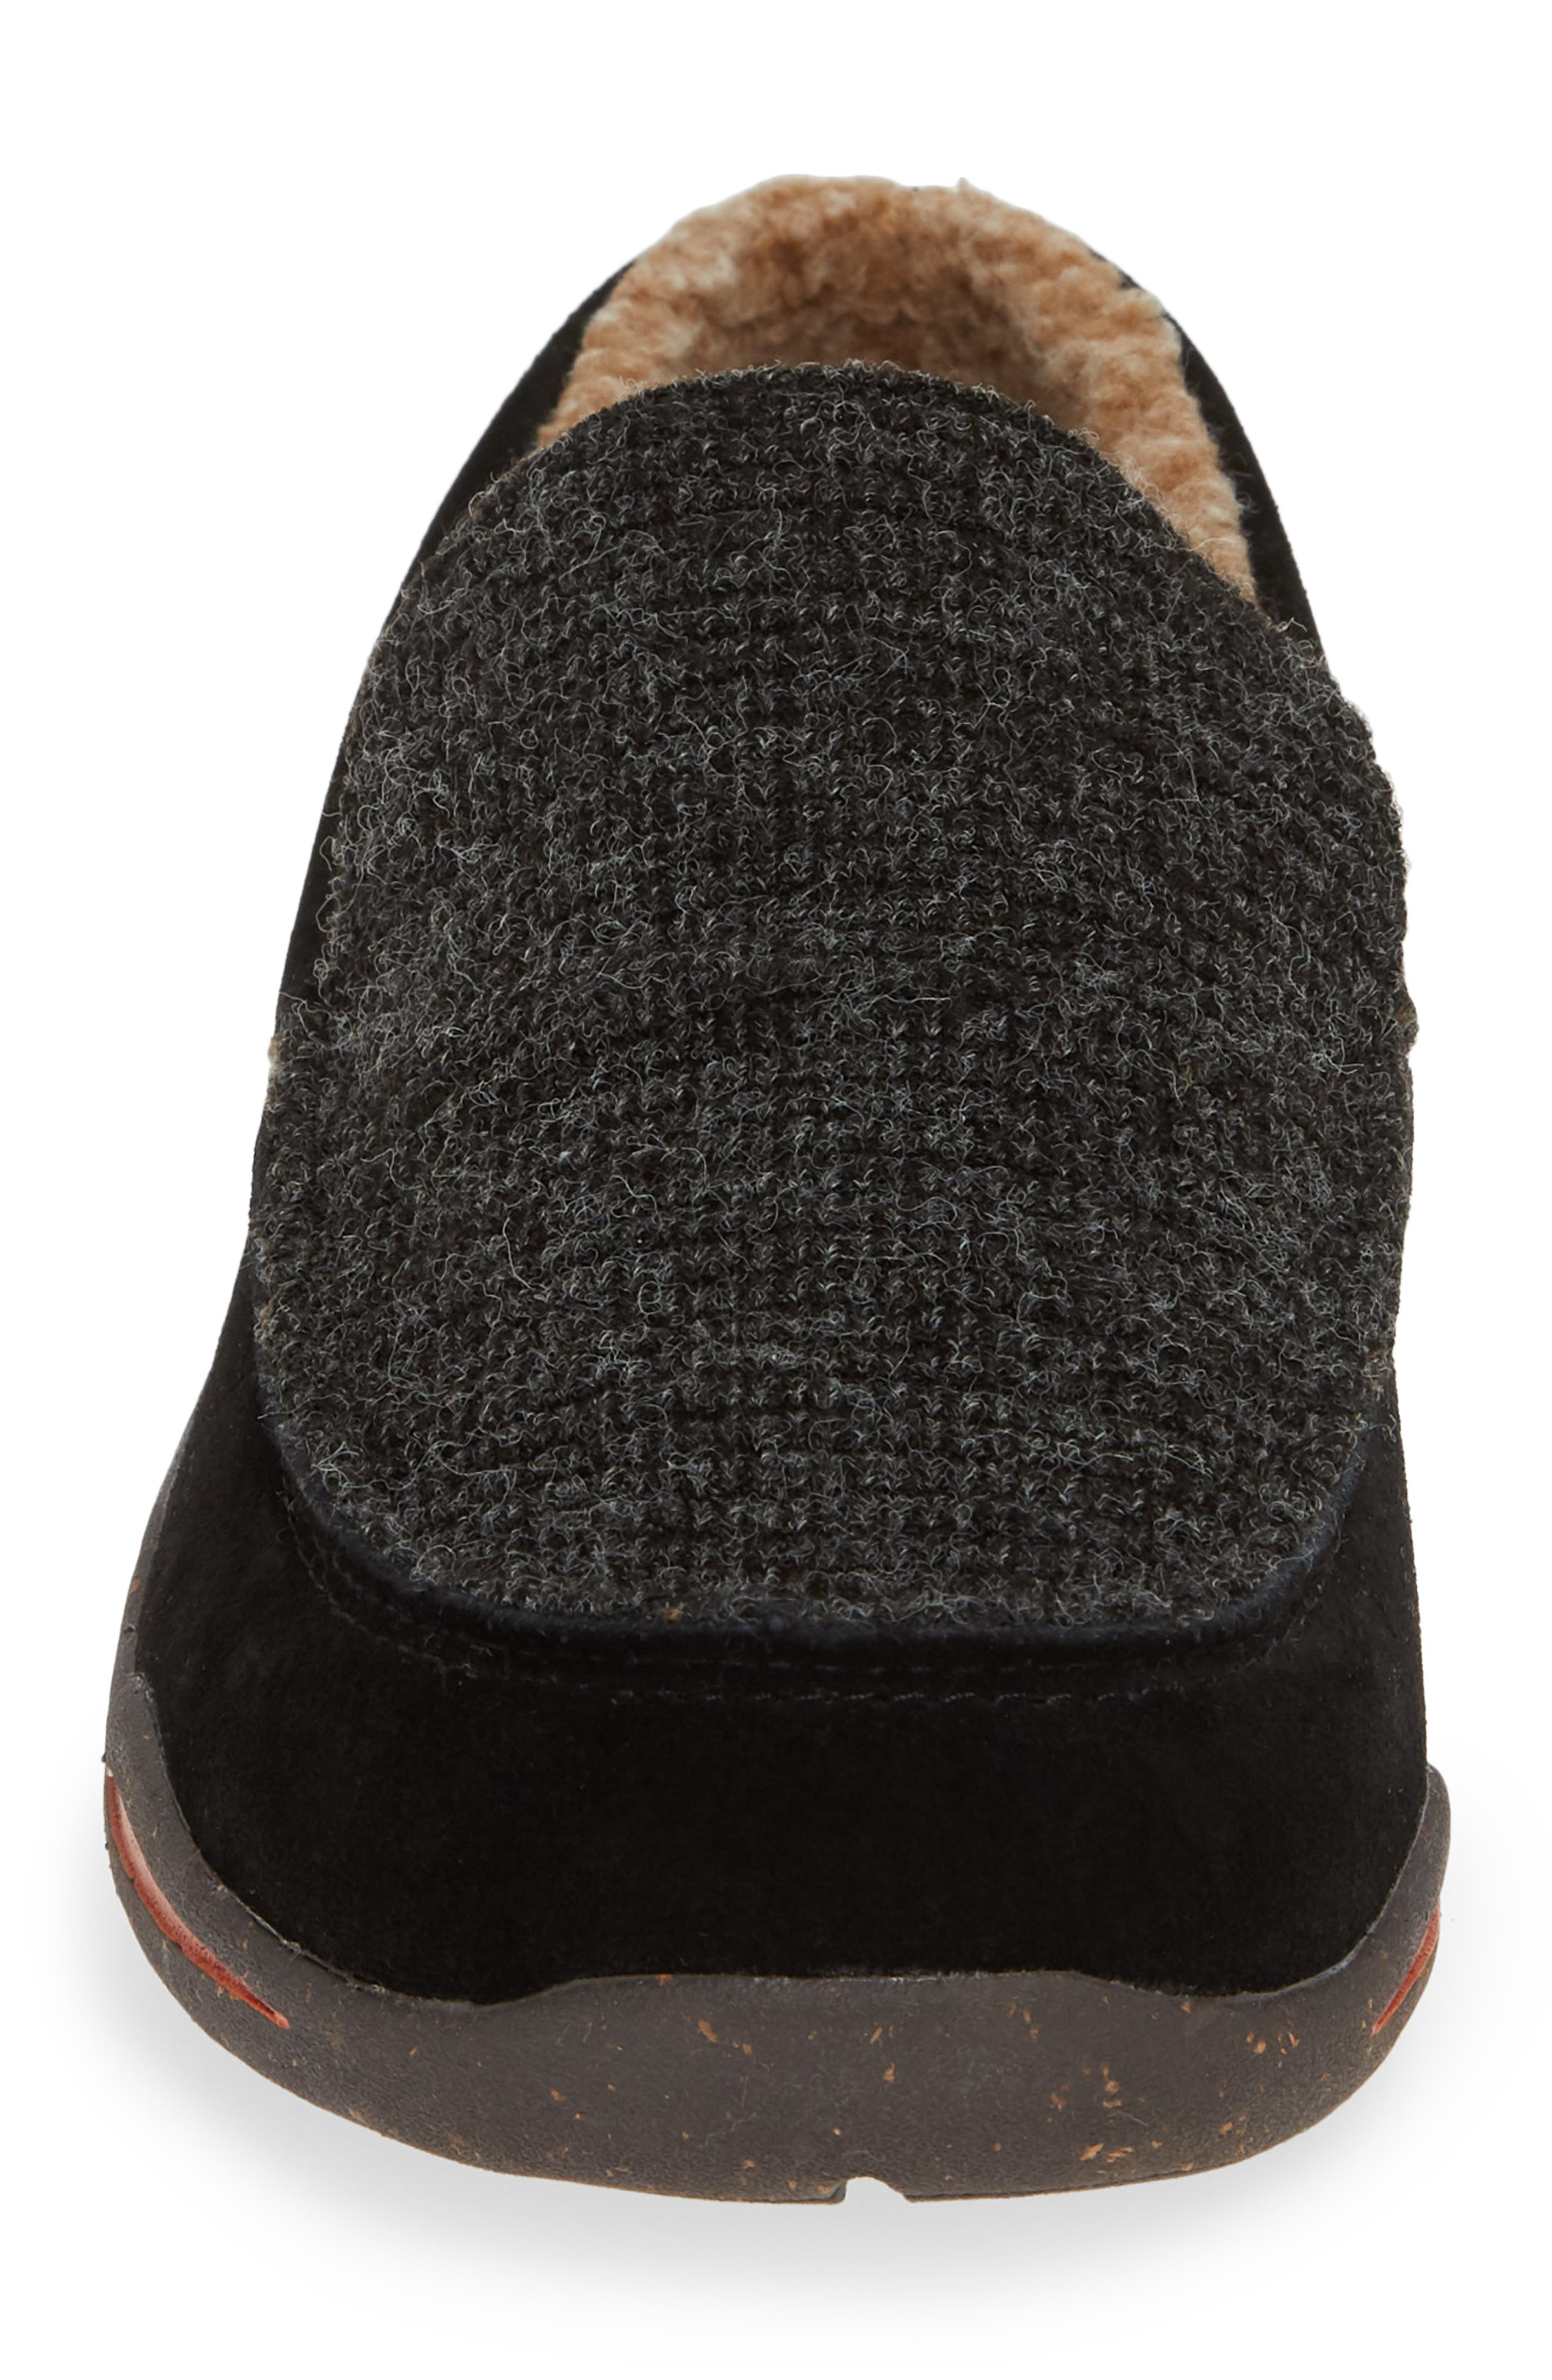 Ellsworth Moc Toe Slipper,                             Alternate thumbnail 4, color,                             BLACK